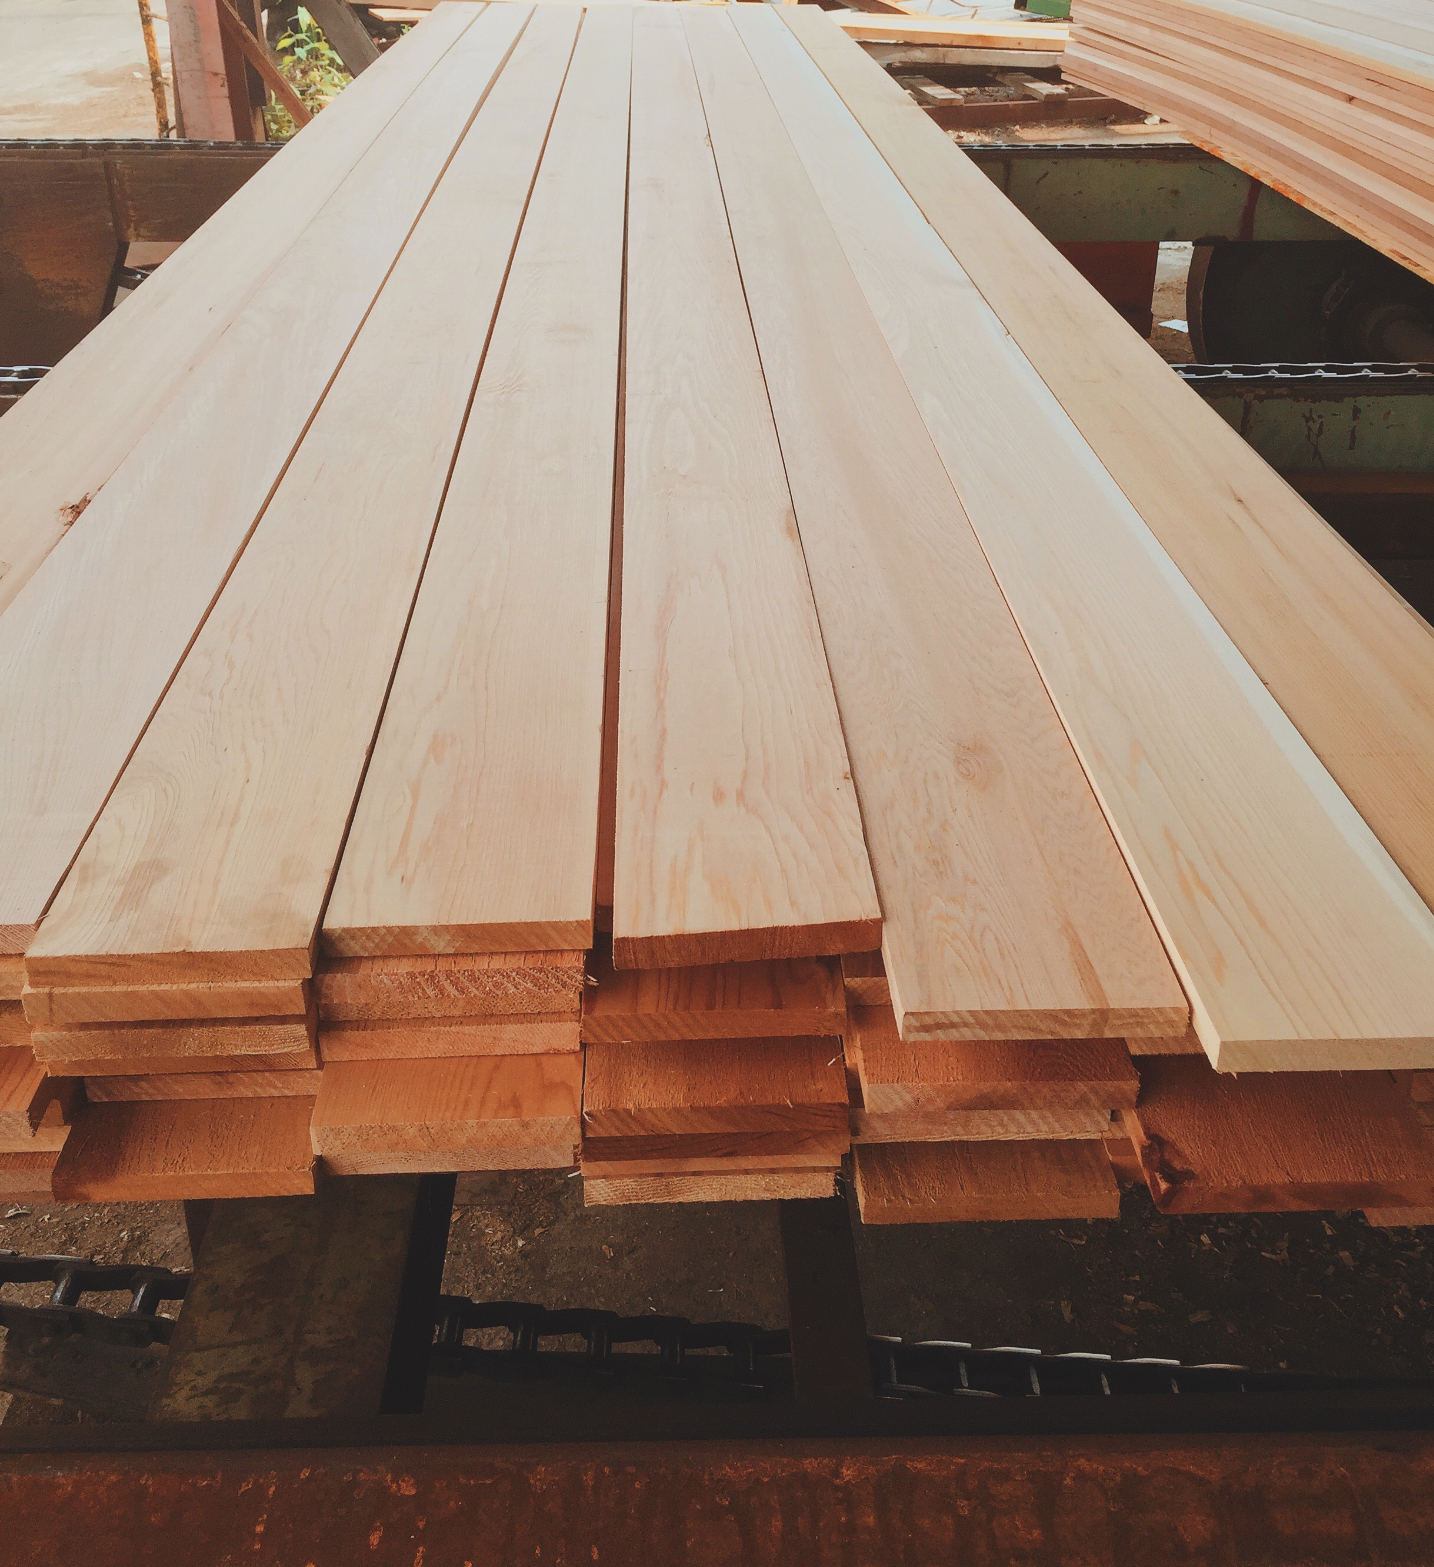 DCL Product: Premium Clear Lumber